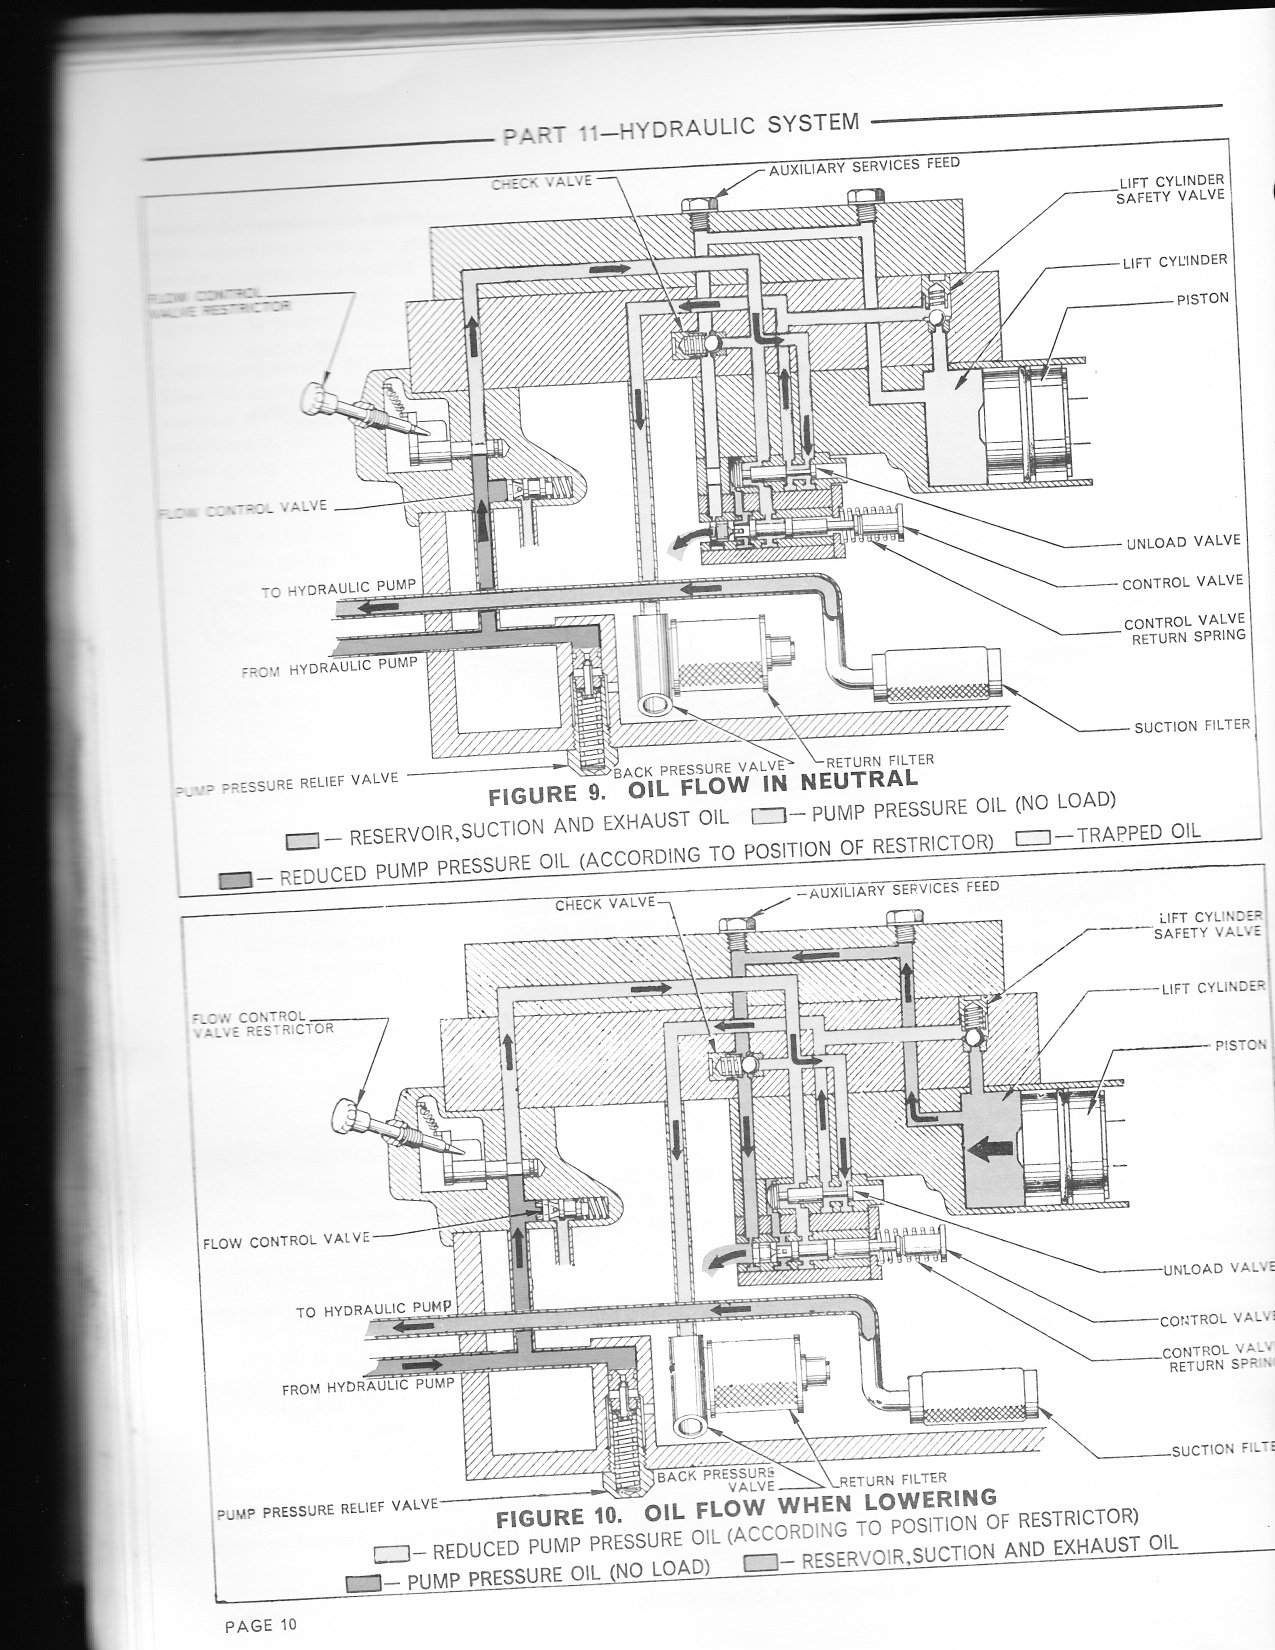 where do i hook up the auxillary hydraulics on a ford 3000 tractor rh justanswer com ford 3000 tractor hydraulic diagram ford 3000 hydraulic system diagram